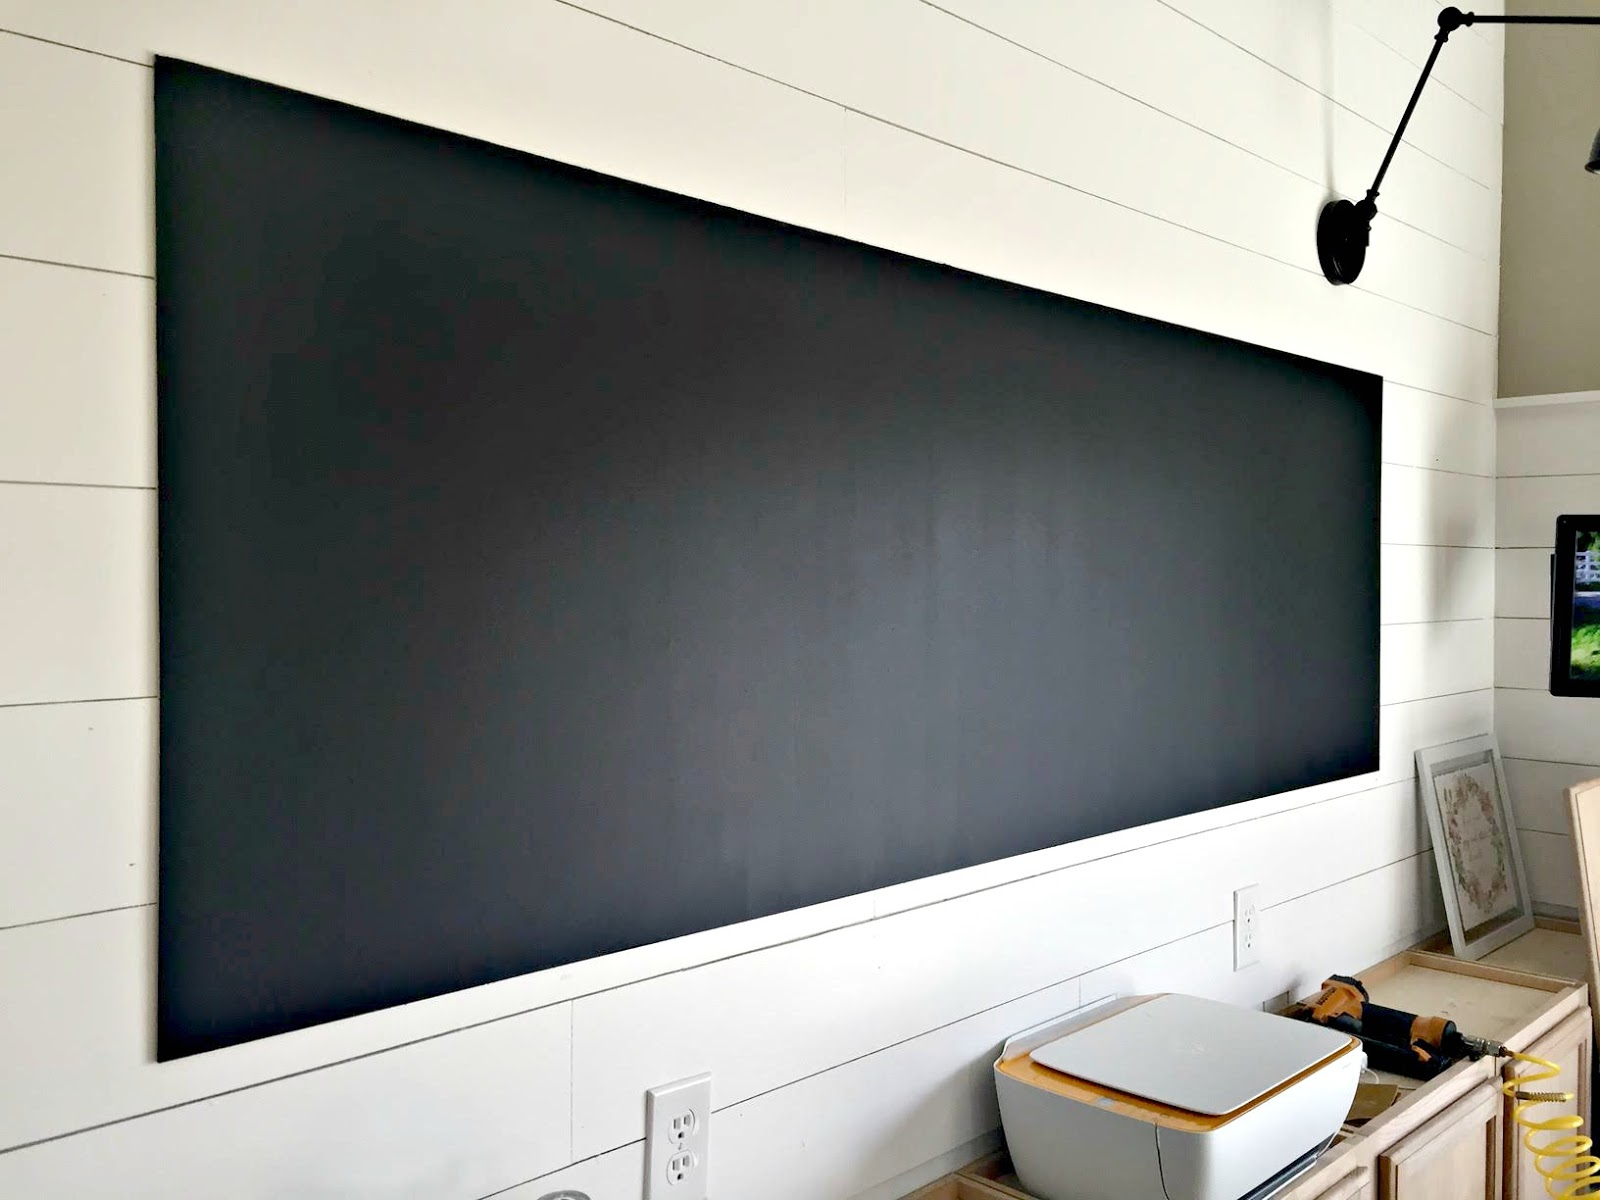 Chalkboard How To Make A Giant Diy Chalkboard From Thrifty Decor Chick